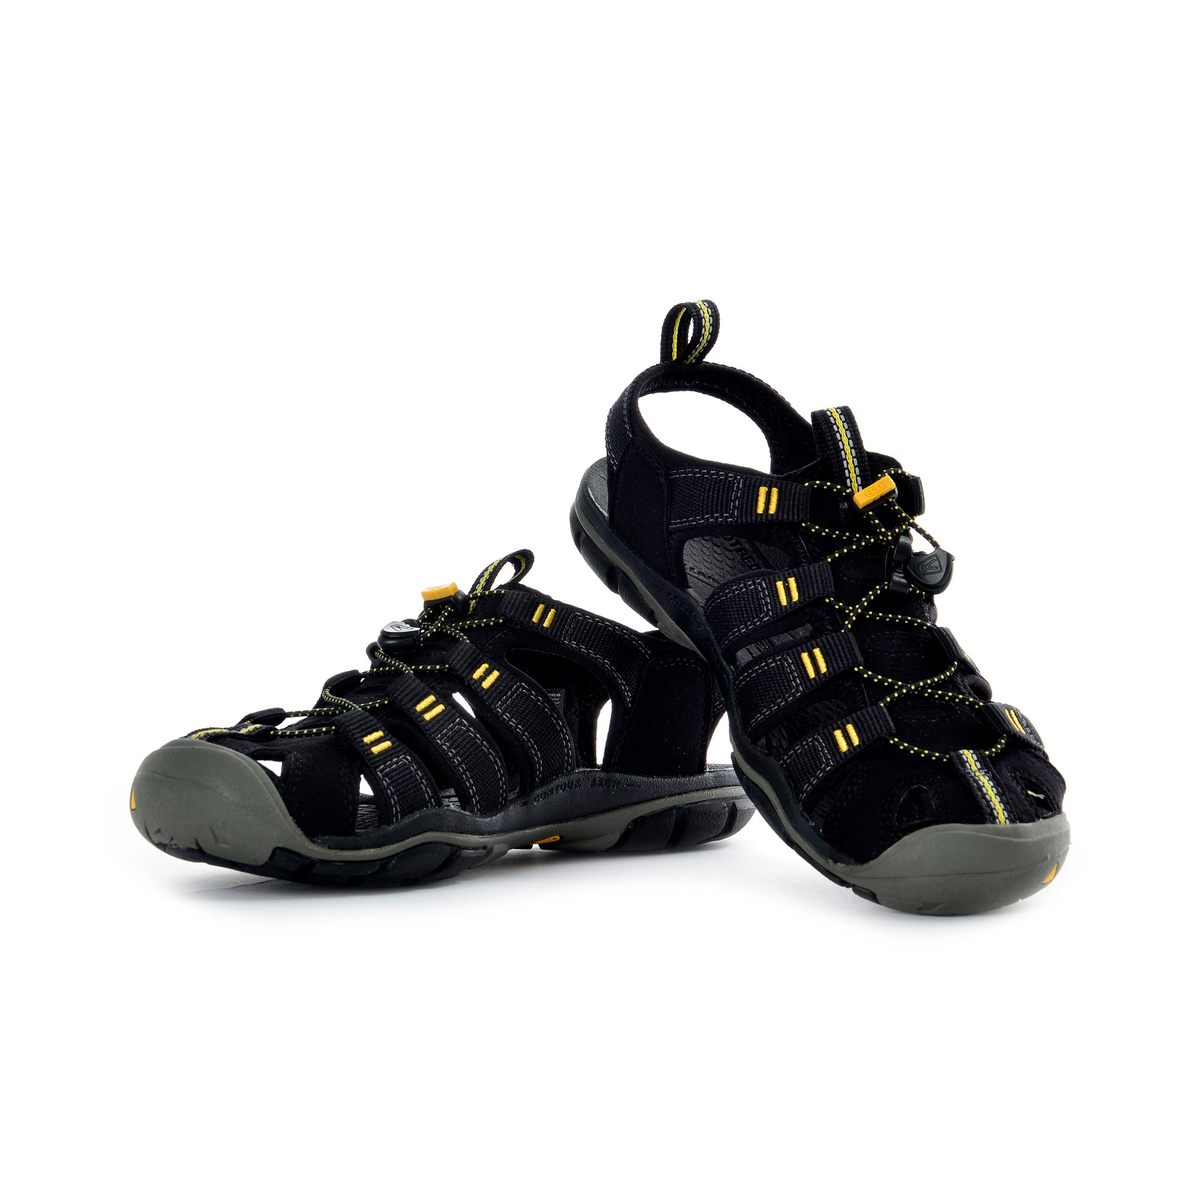 super cute fda3d b4429 Buy Keen Women's Sandal ClearWater CNX Black 40 - Special ...